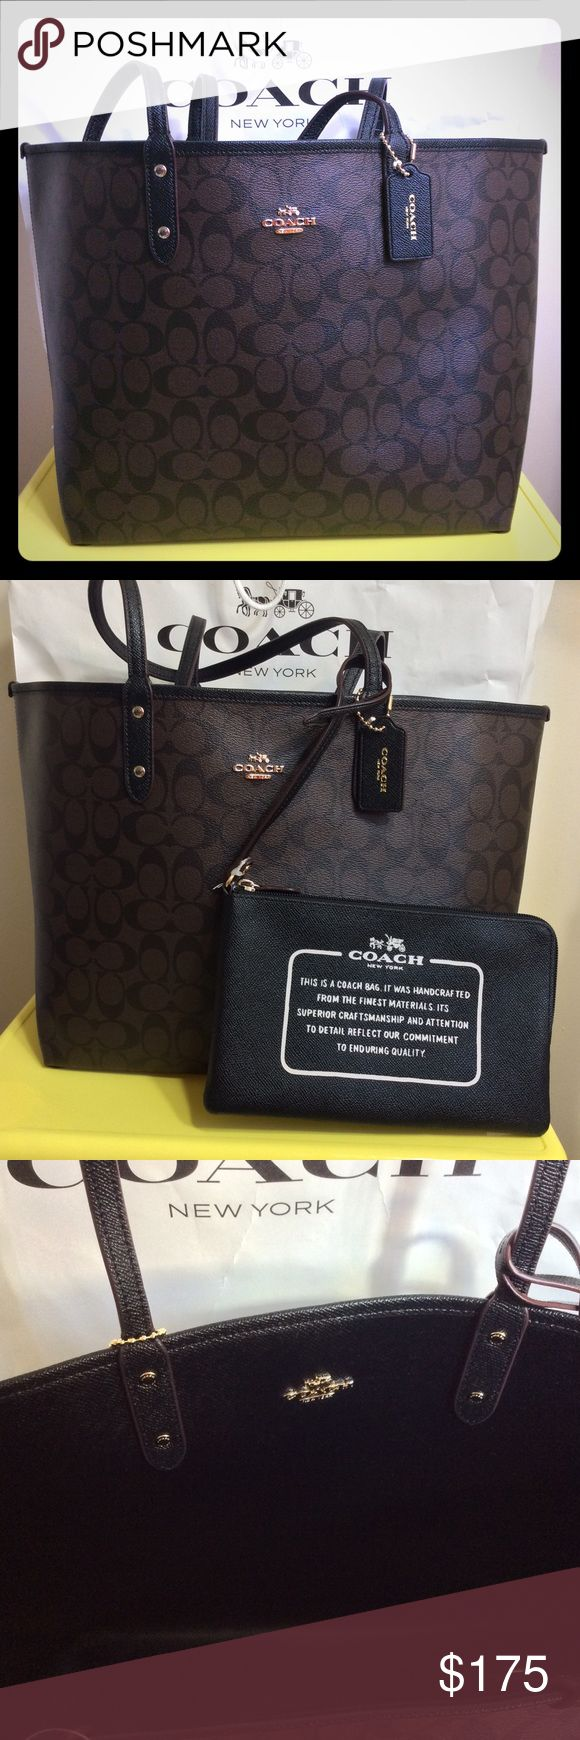 Coach Signature Large Brown Reversible Tote Bag 100% Authentic. Brand new with tag. Reversible It can be a Signature brown logo and Black Bag. Comes with Pochette. Coach Bags Totes